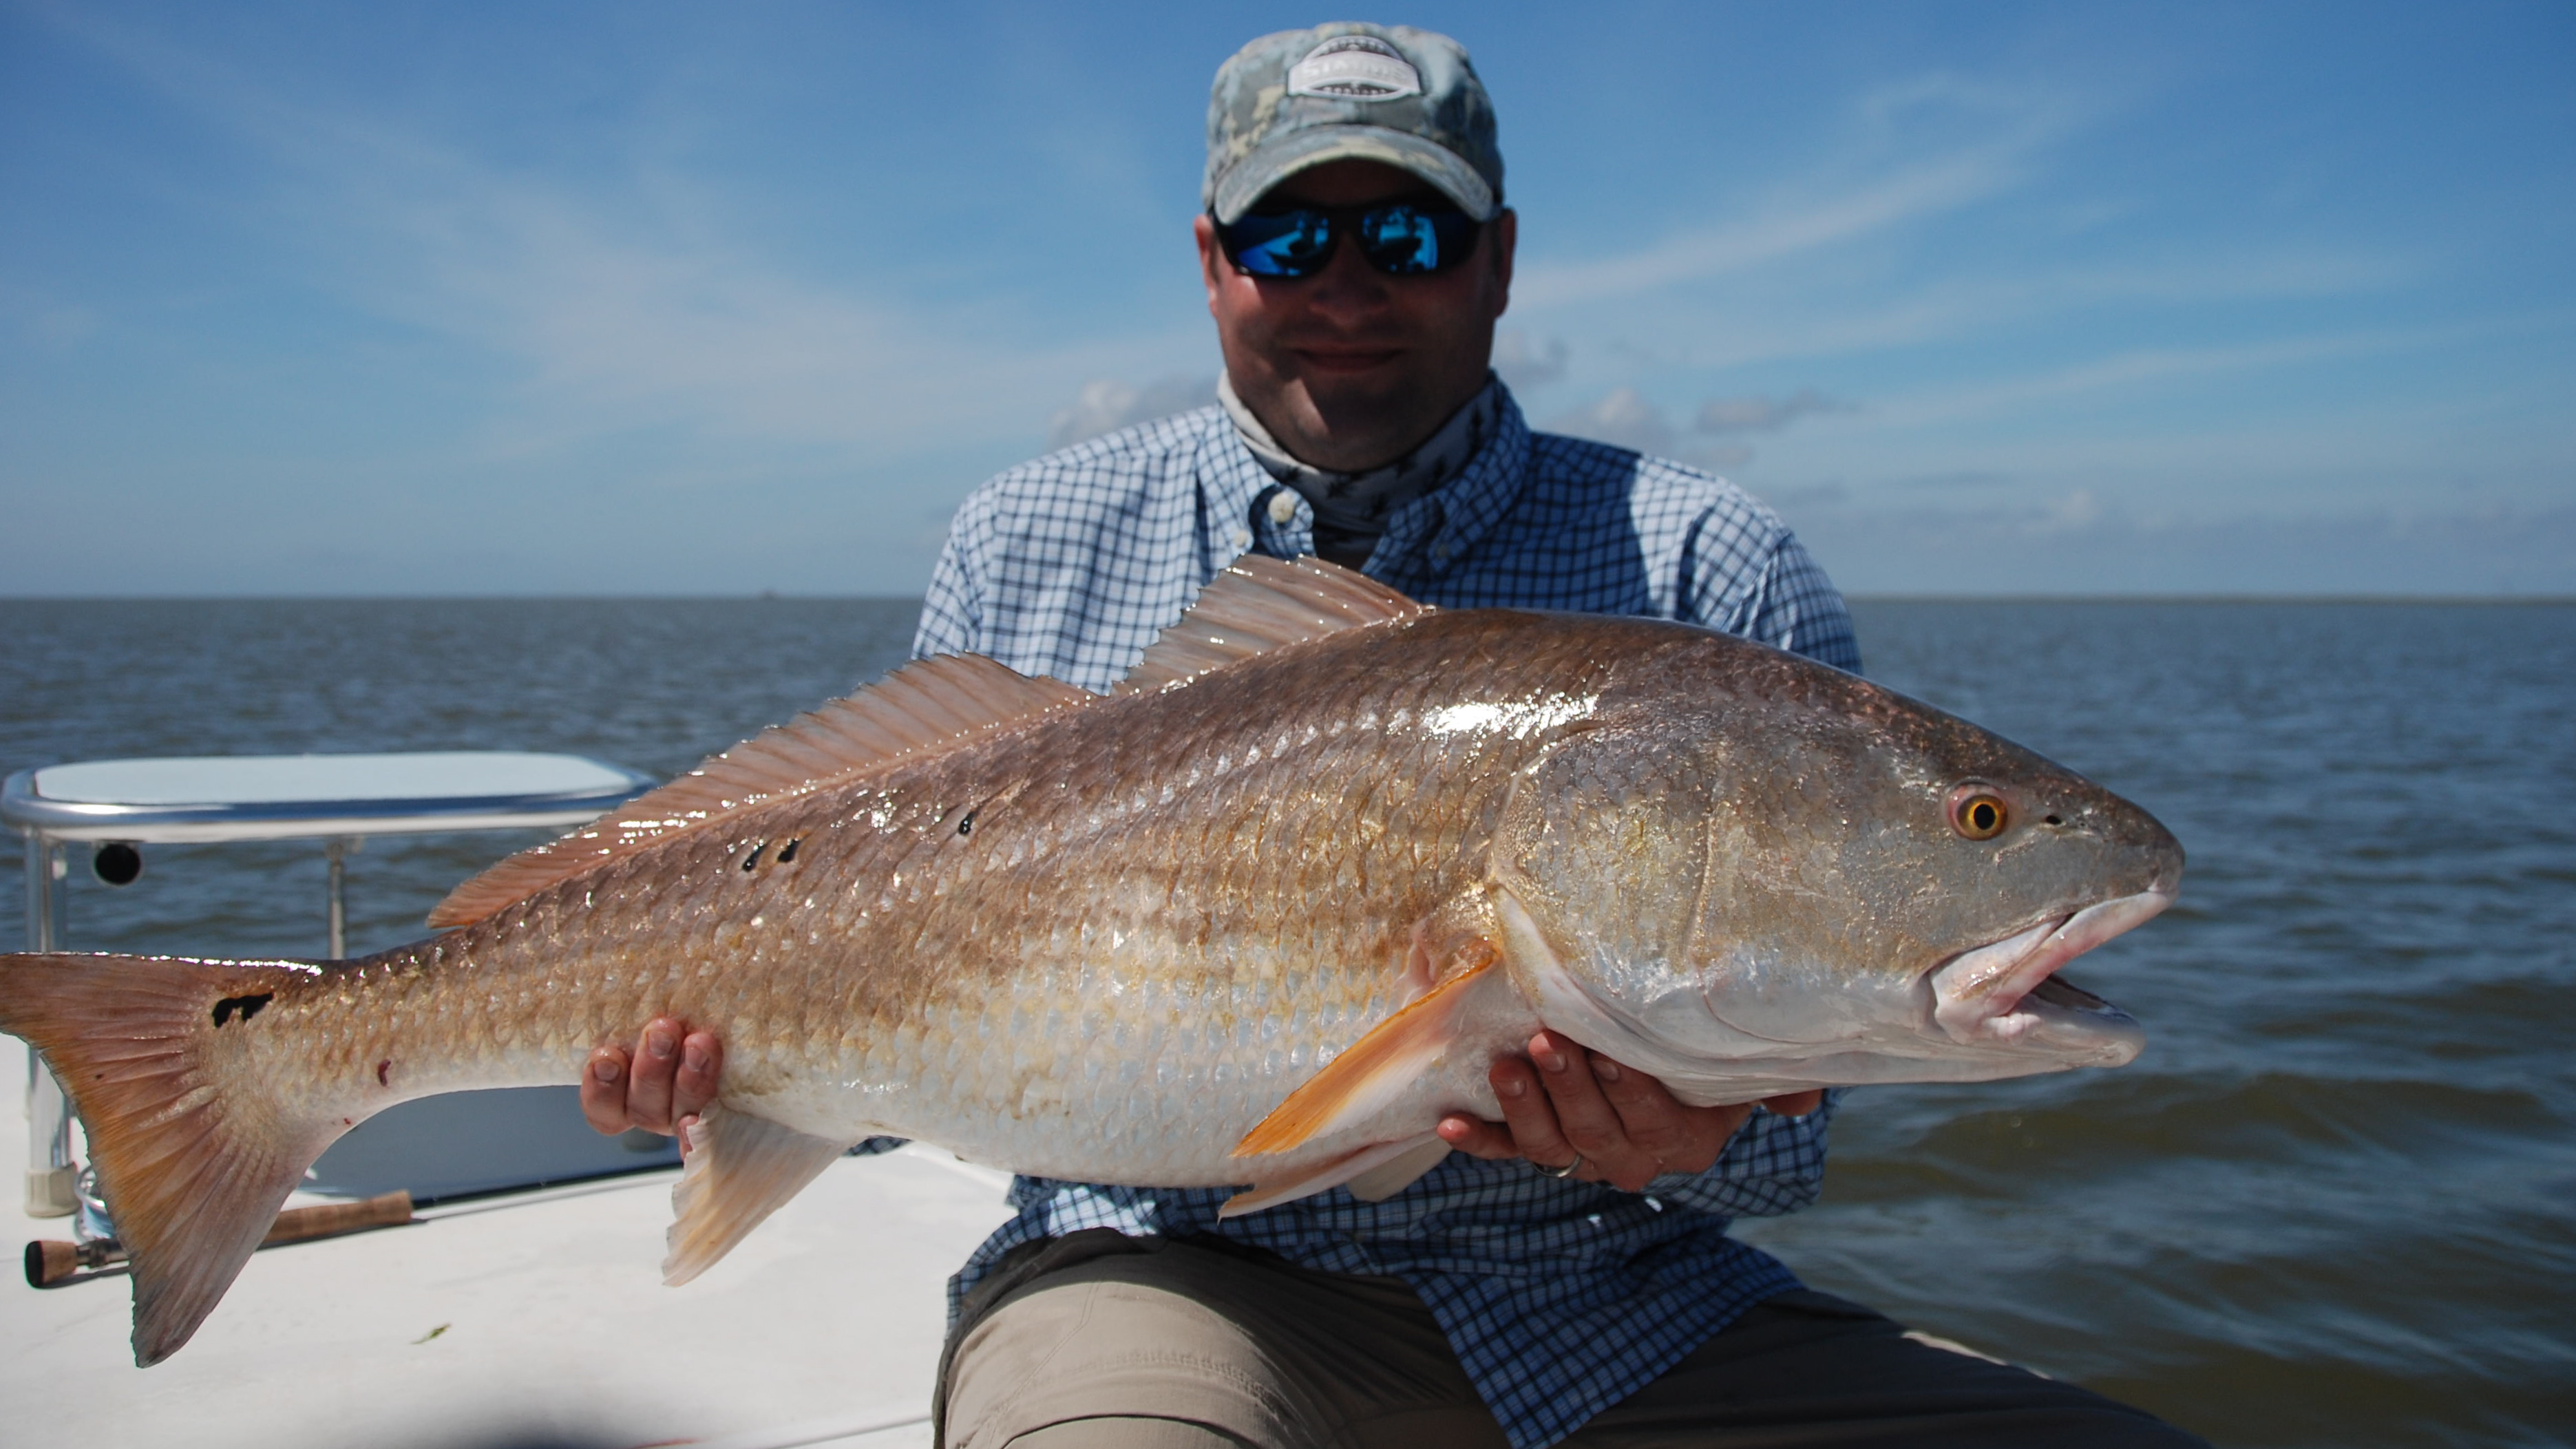 More late season big redfish shallow south for Fly fishing redfish